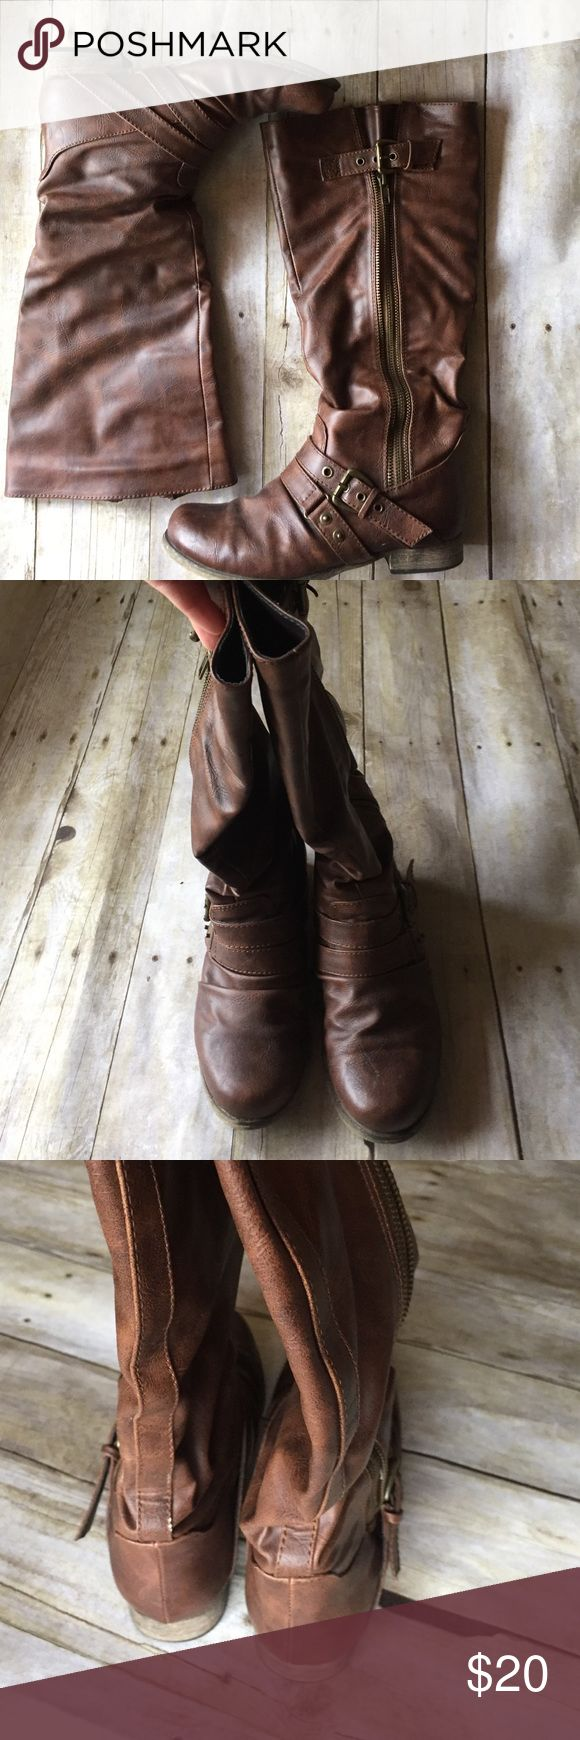 Carlos Santana Boots Brown Carlos Santana boots in great condition. Look great with jeans or skirts/dresses. Perfect for fall!! Carlos Santana Shoes